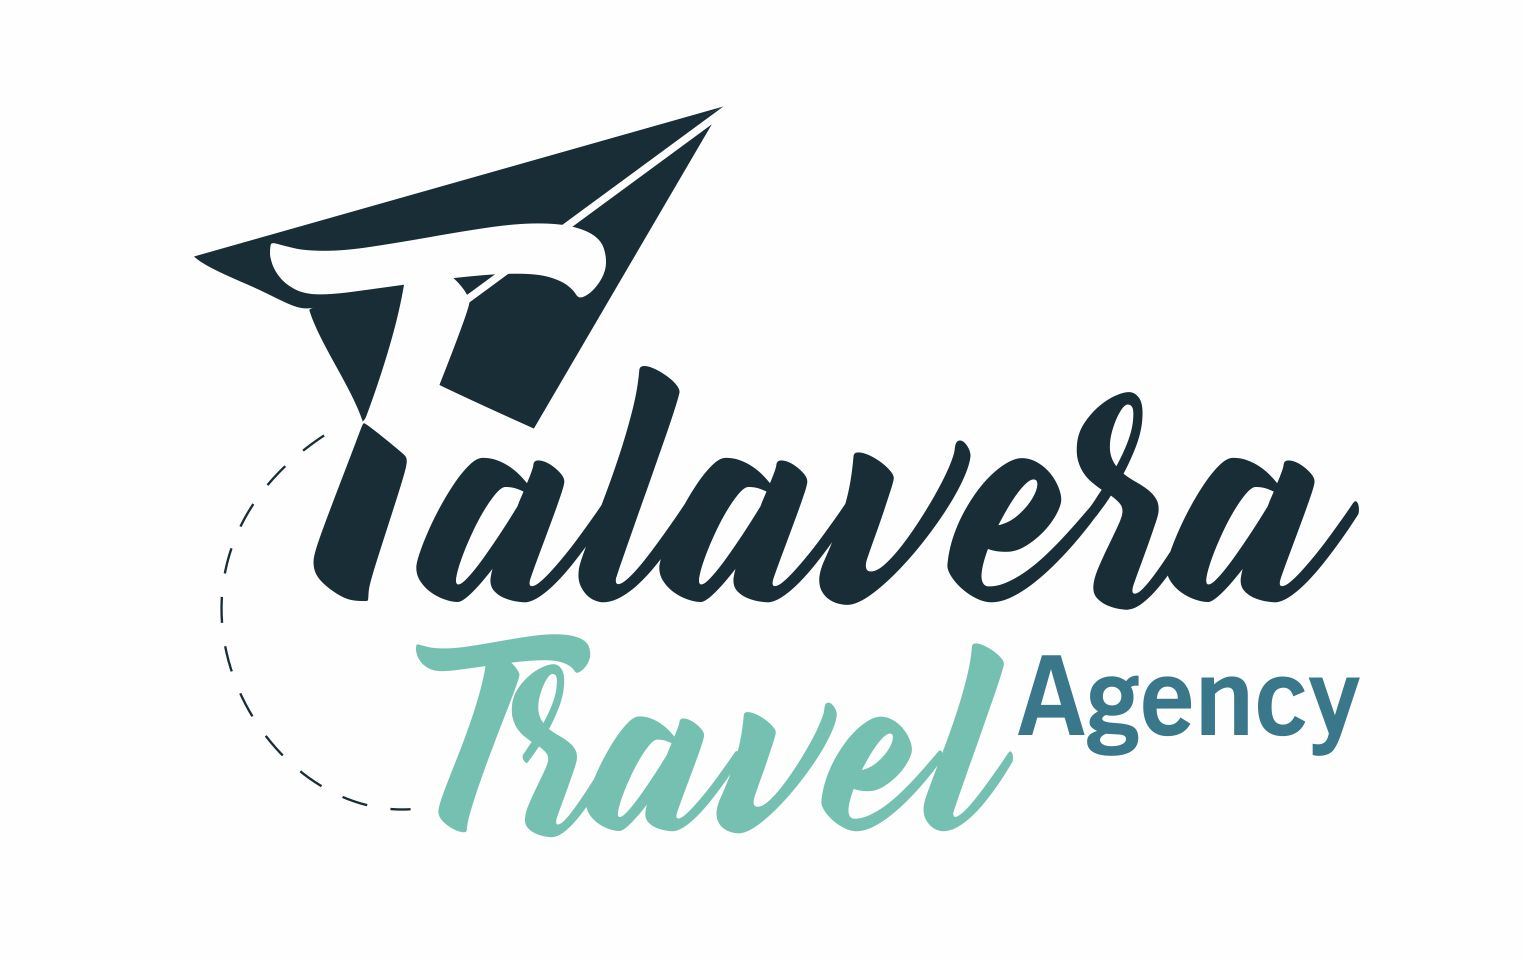 Talavera Travel